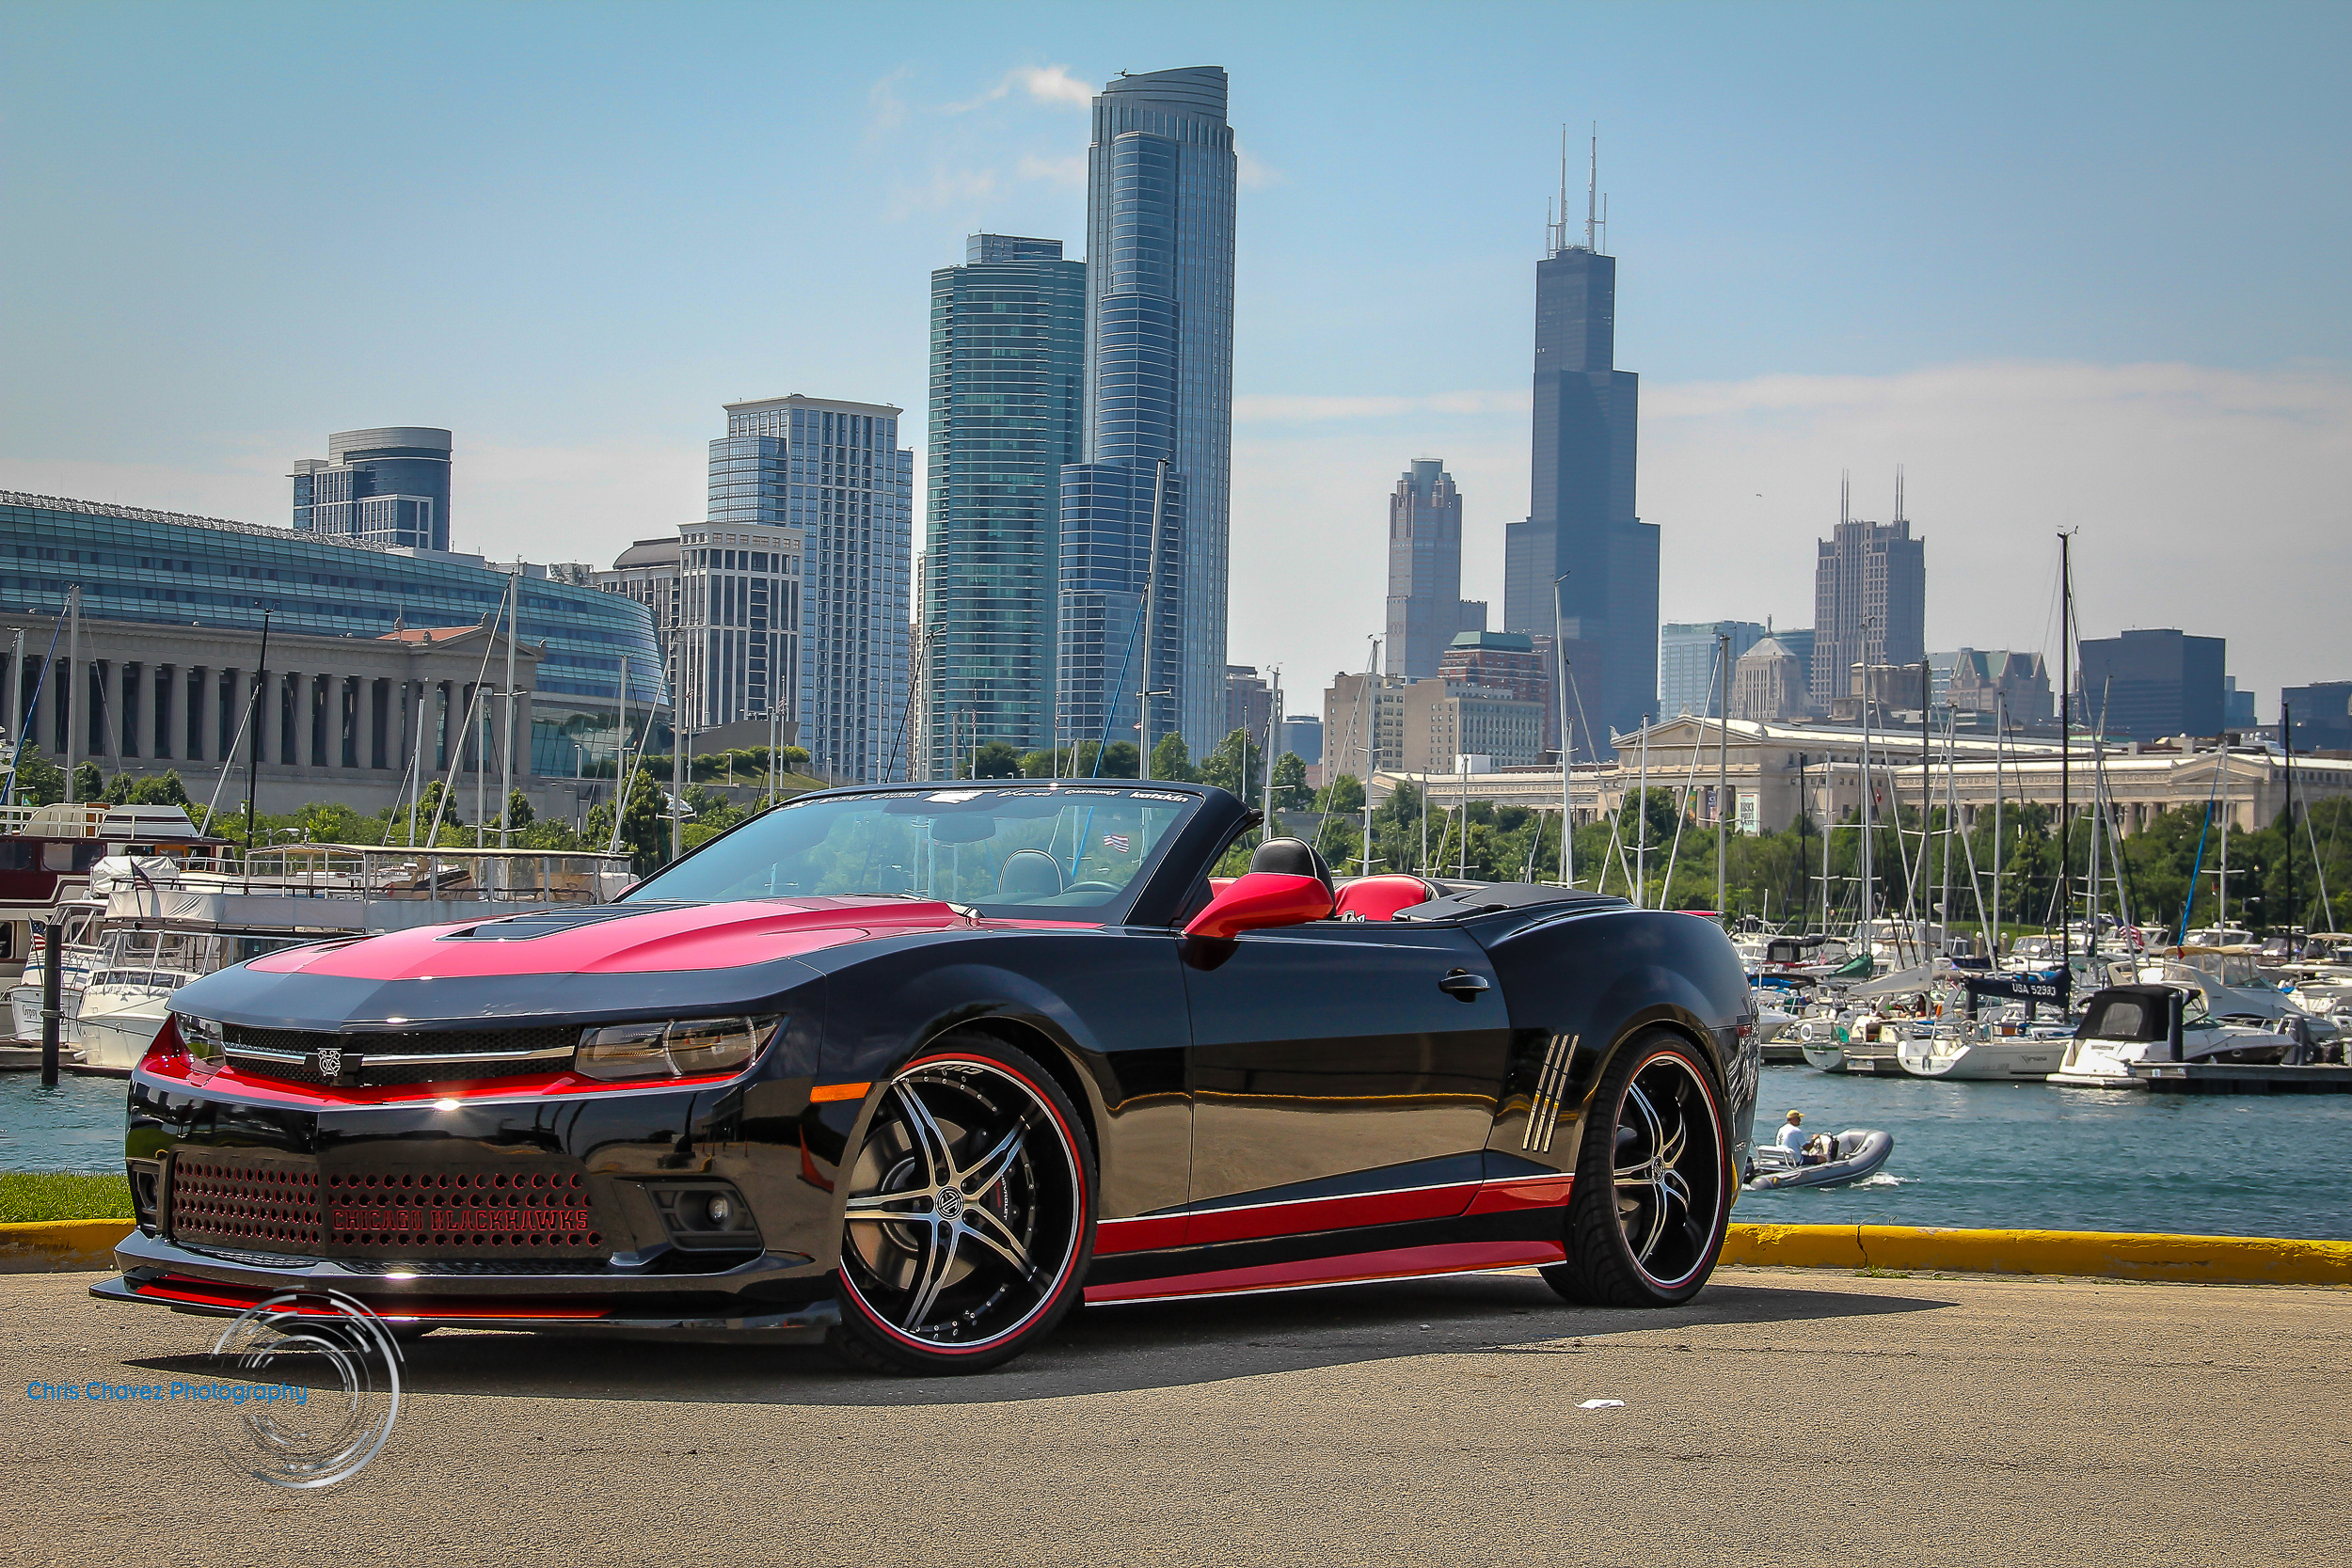 2014 Chicago Blackhawks Chevy Camaro SS Convertible -  Picture provided by Chris Chavez Photography